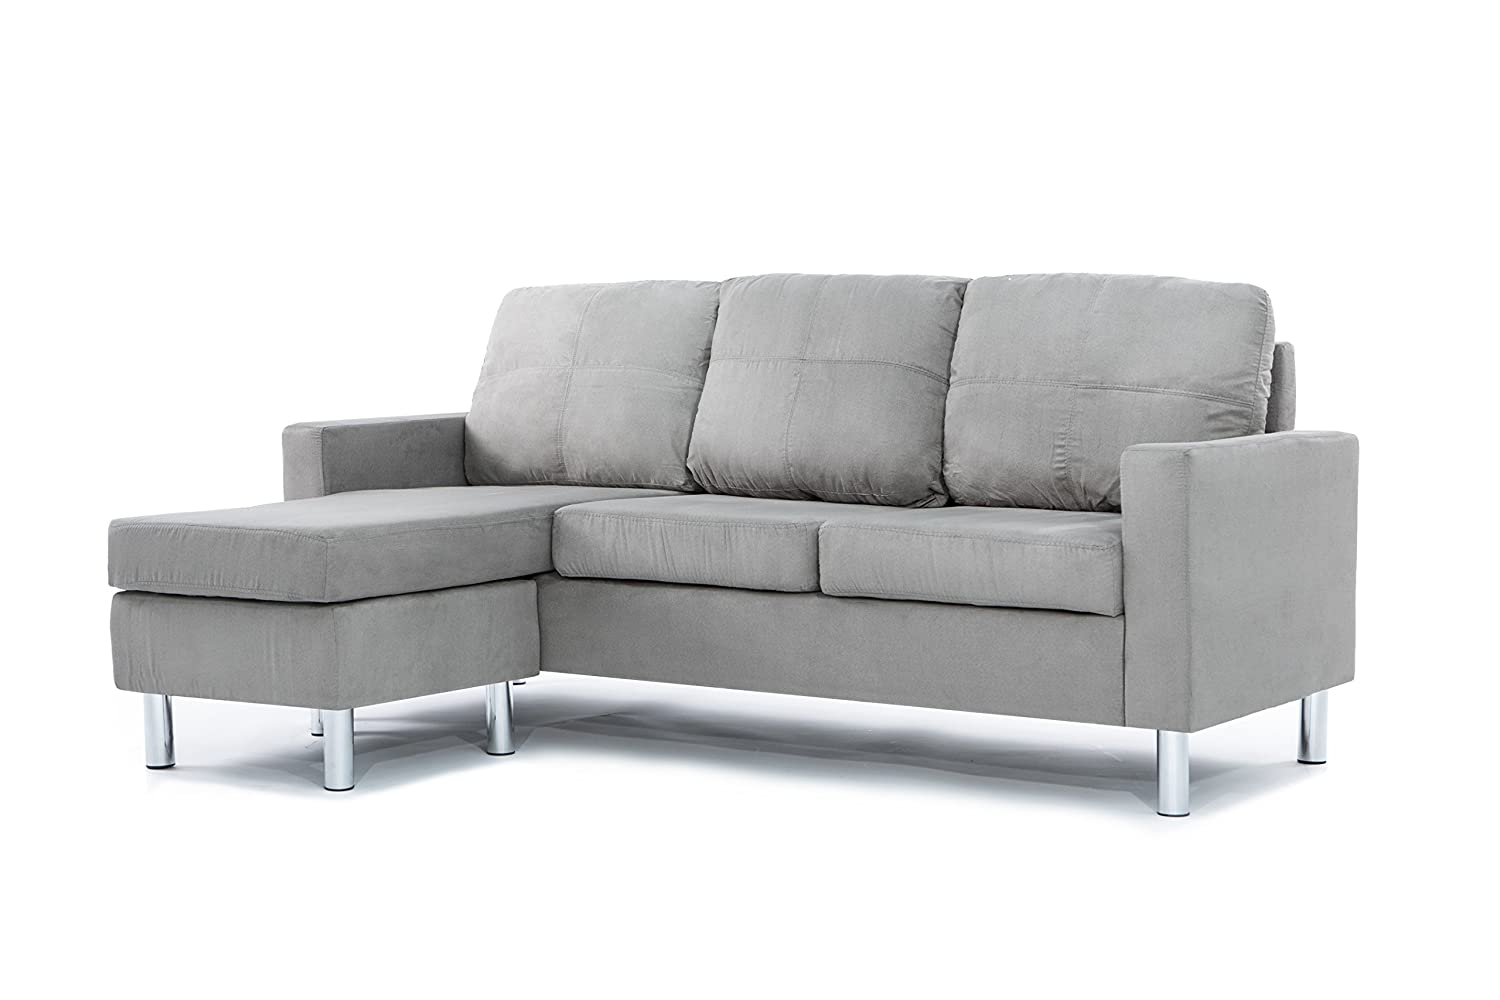 two light pewter hover sofa mickey sofas american pc grey slate fabric zoom couch freight sectional gray to piece